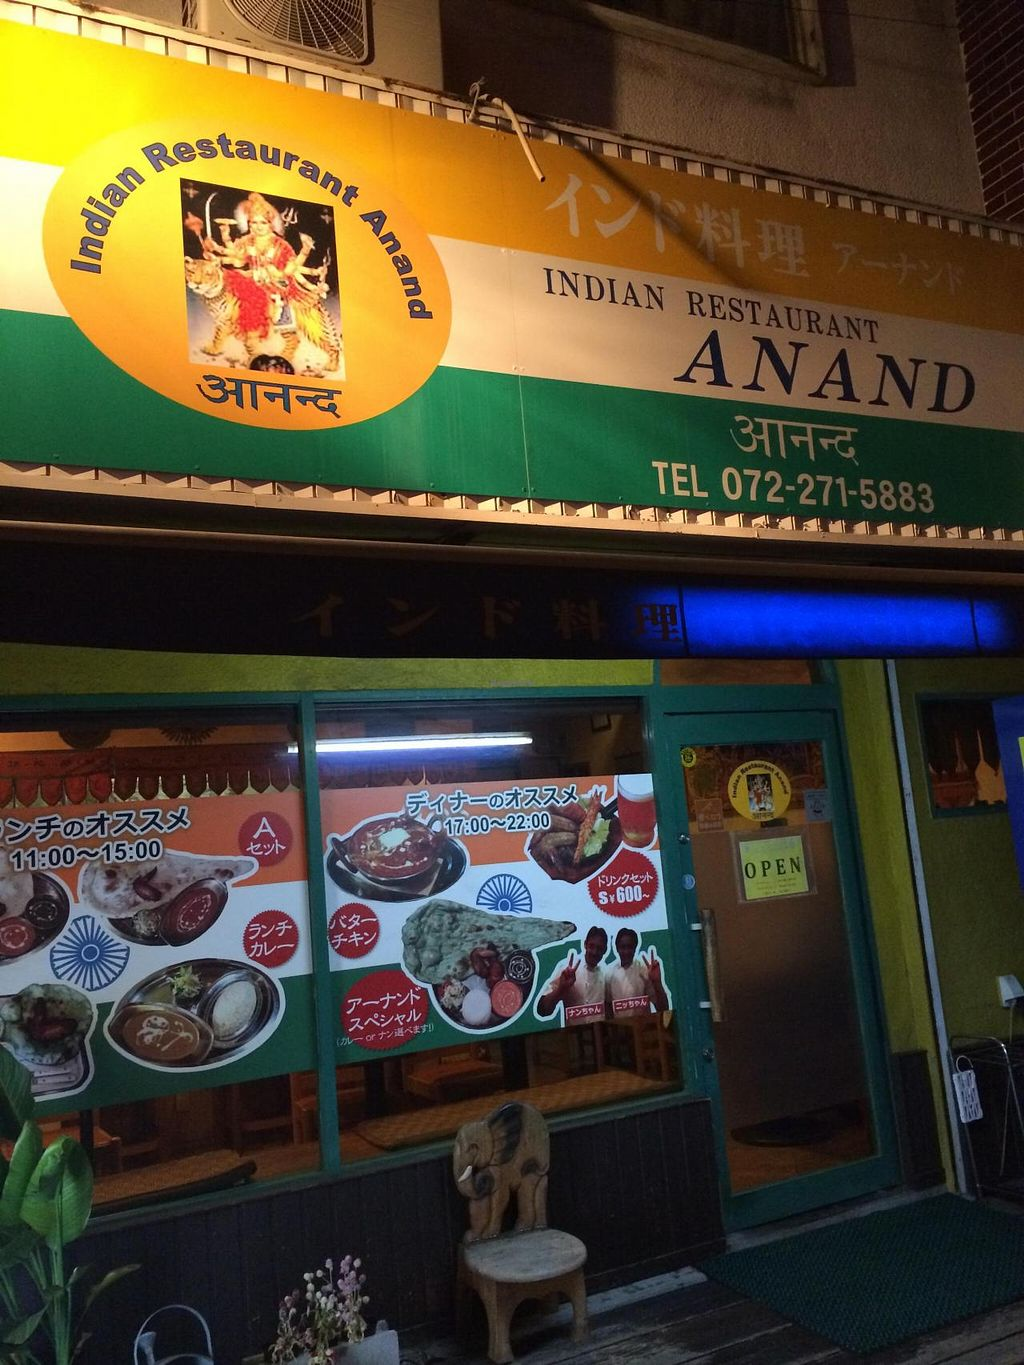 """Photo of Anand Indian  by <a href=""""/members/profile/Vegeiko"""">Vegeiko</a> <br/>Outside feature - in front of FLETS 100 yen shop (you can park in there) <br/> November 20, 2014  - <a href='/contact/abuse/image/53171/86103'>Report</a>"""